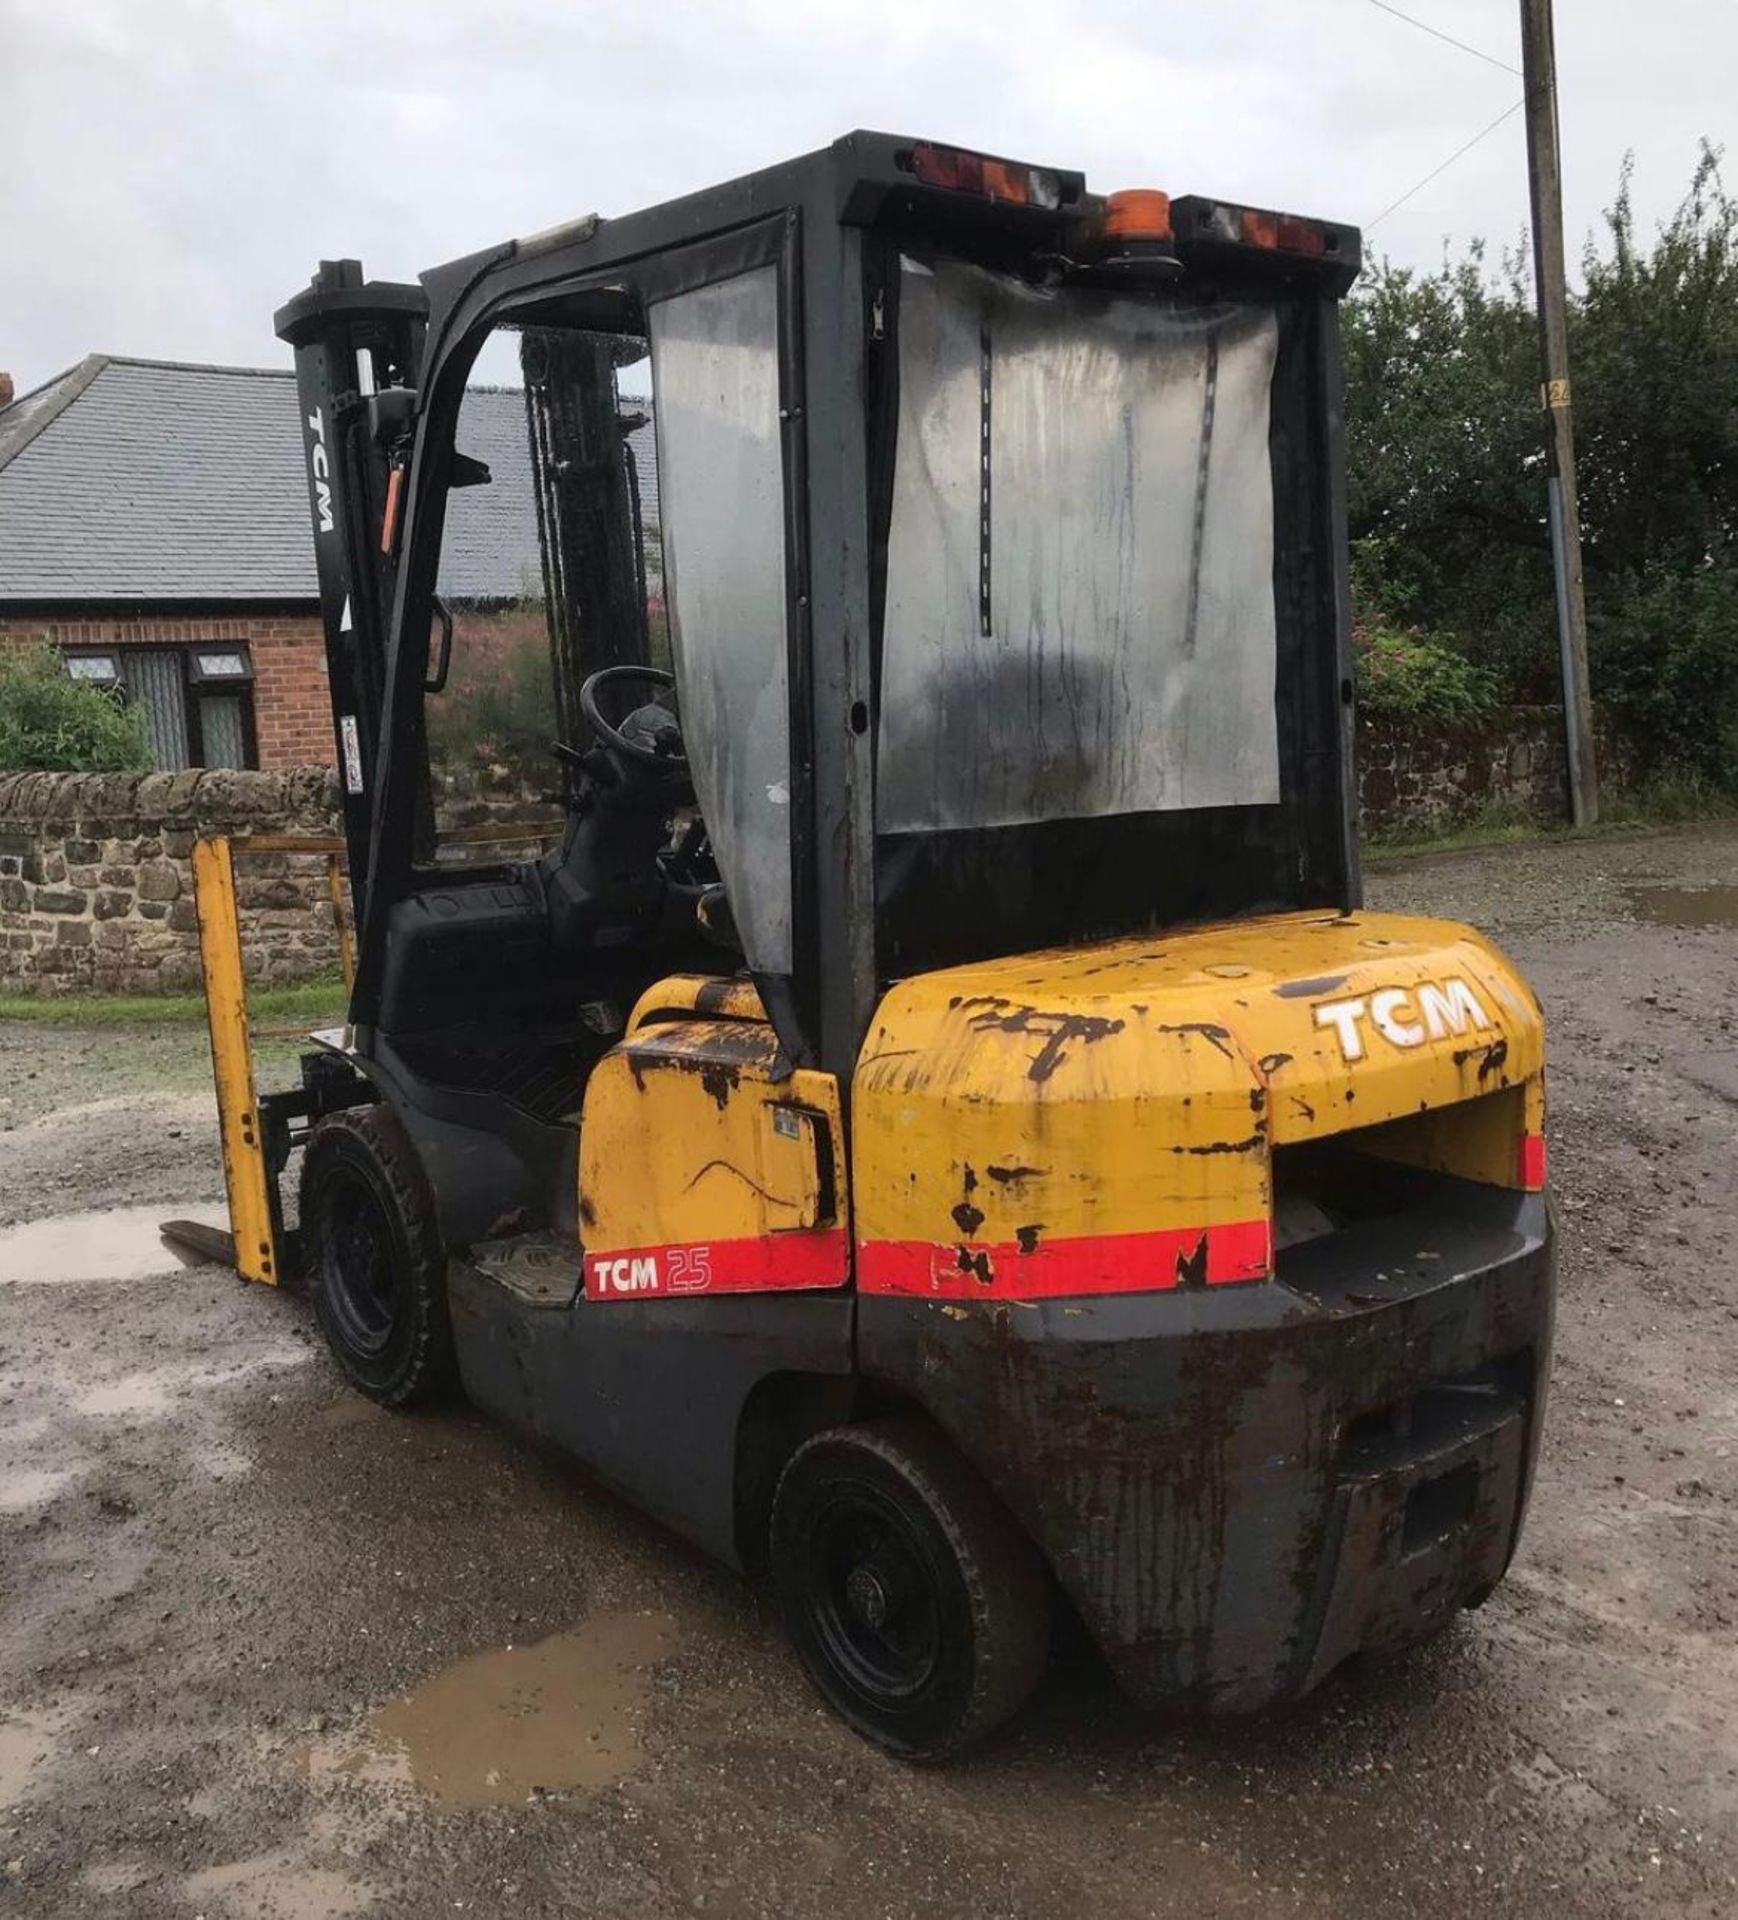 2007 TCM 25 FORKLIFT, RUNS, DRIVES AND LIFTS, 2.5 TON, SIDE SHIFT, LOW 7700 HOURS *PLUS VAT* - Image 5 of 5